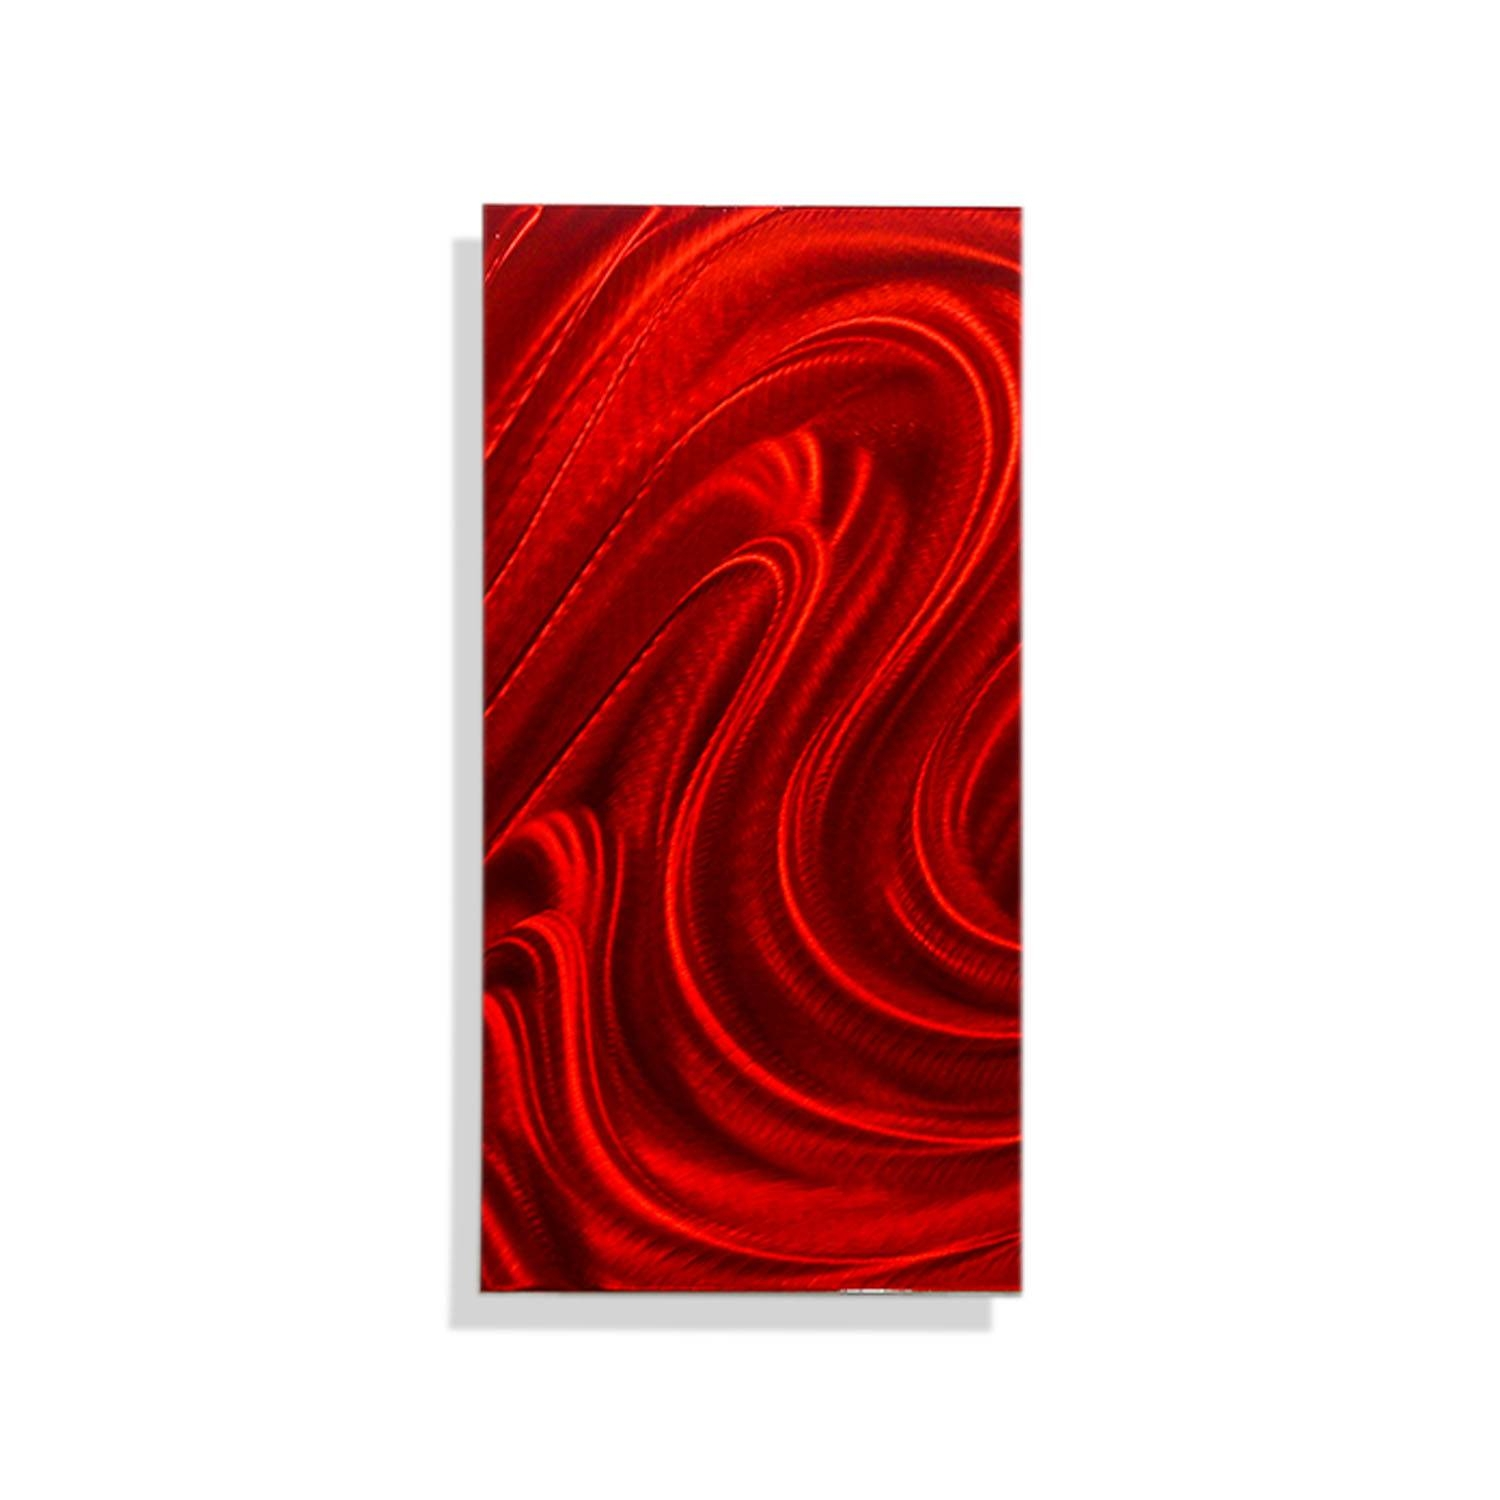 Red Mirage Solo – Red Metal Wall Art – Single Panel Wall Décor For Most Up To Date Red Metal Wall Art (Gallery 2 of 20)